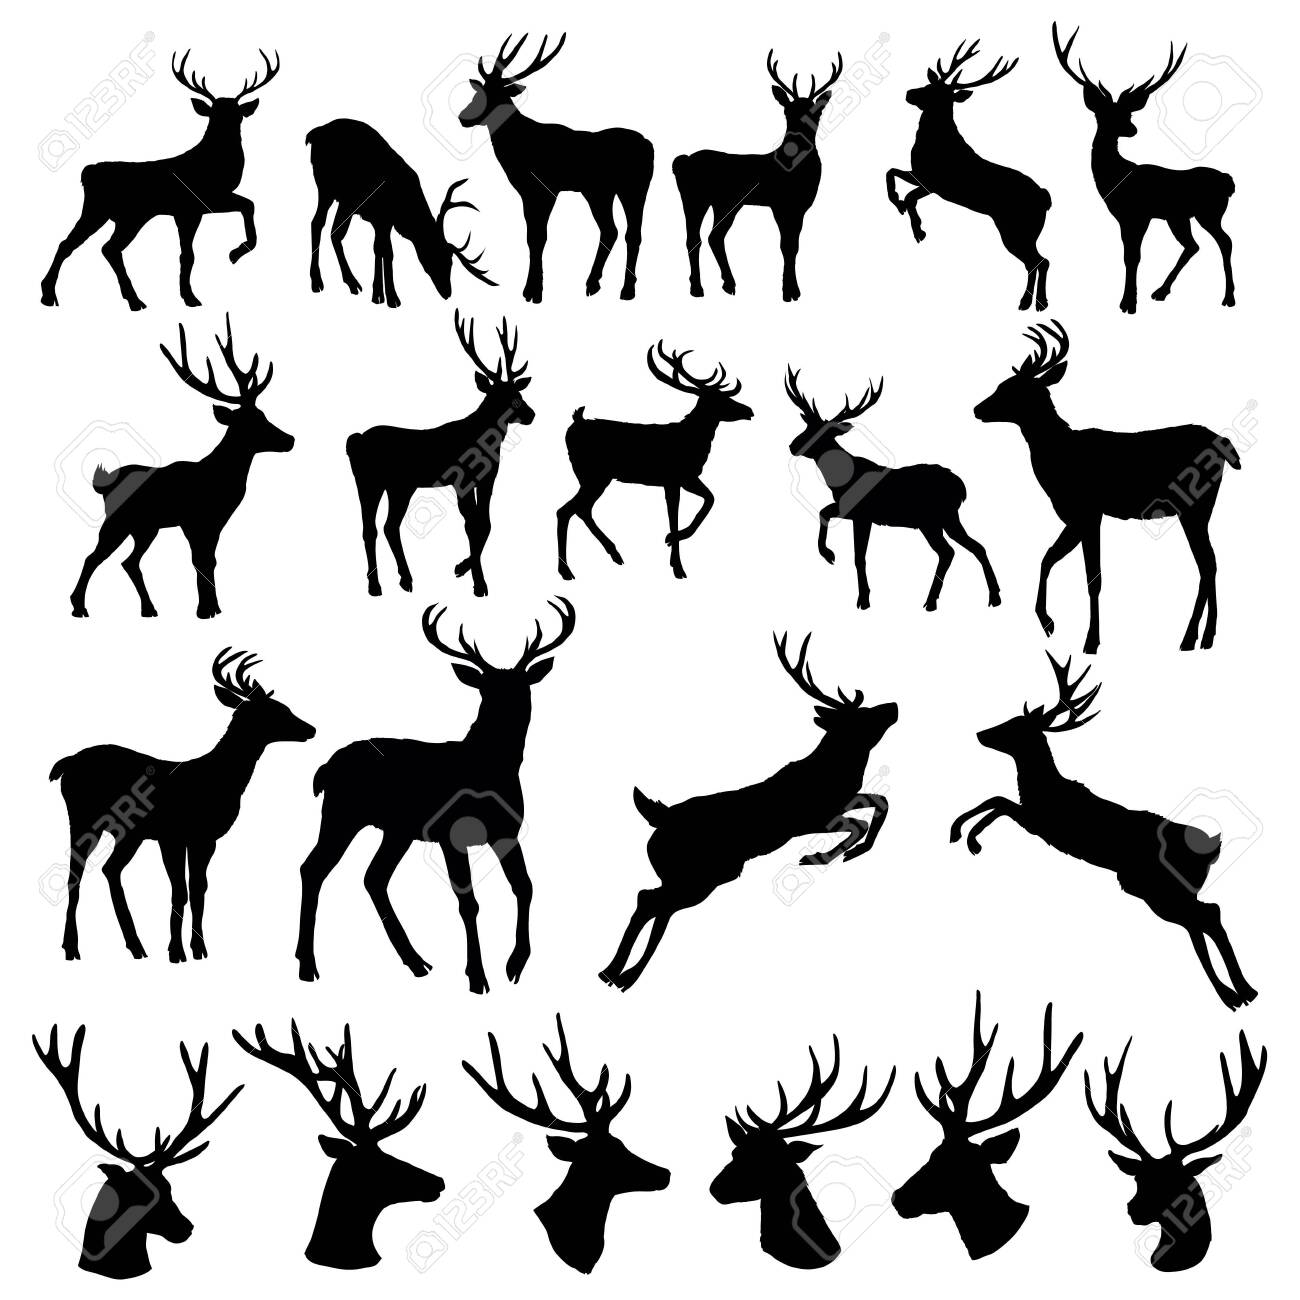 Set of a deer silhouette on white background - 146642612